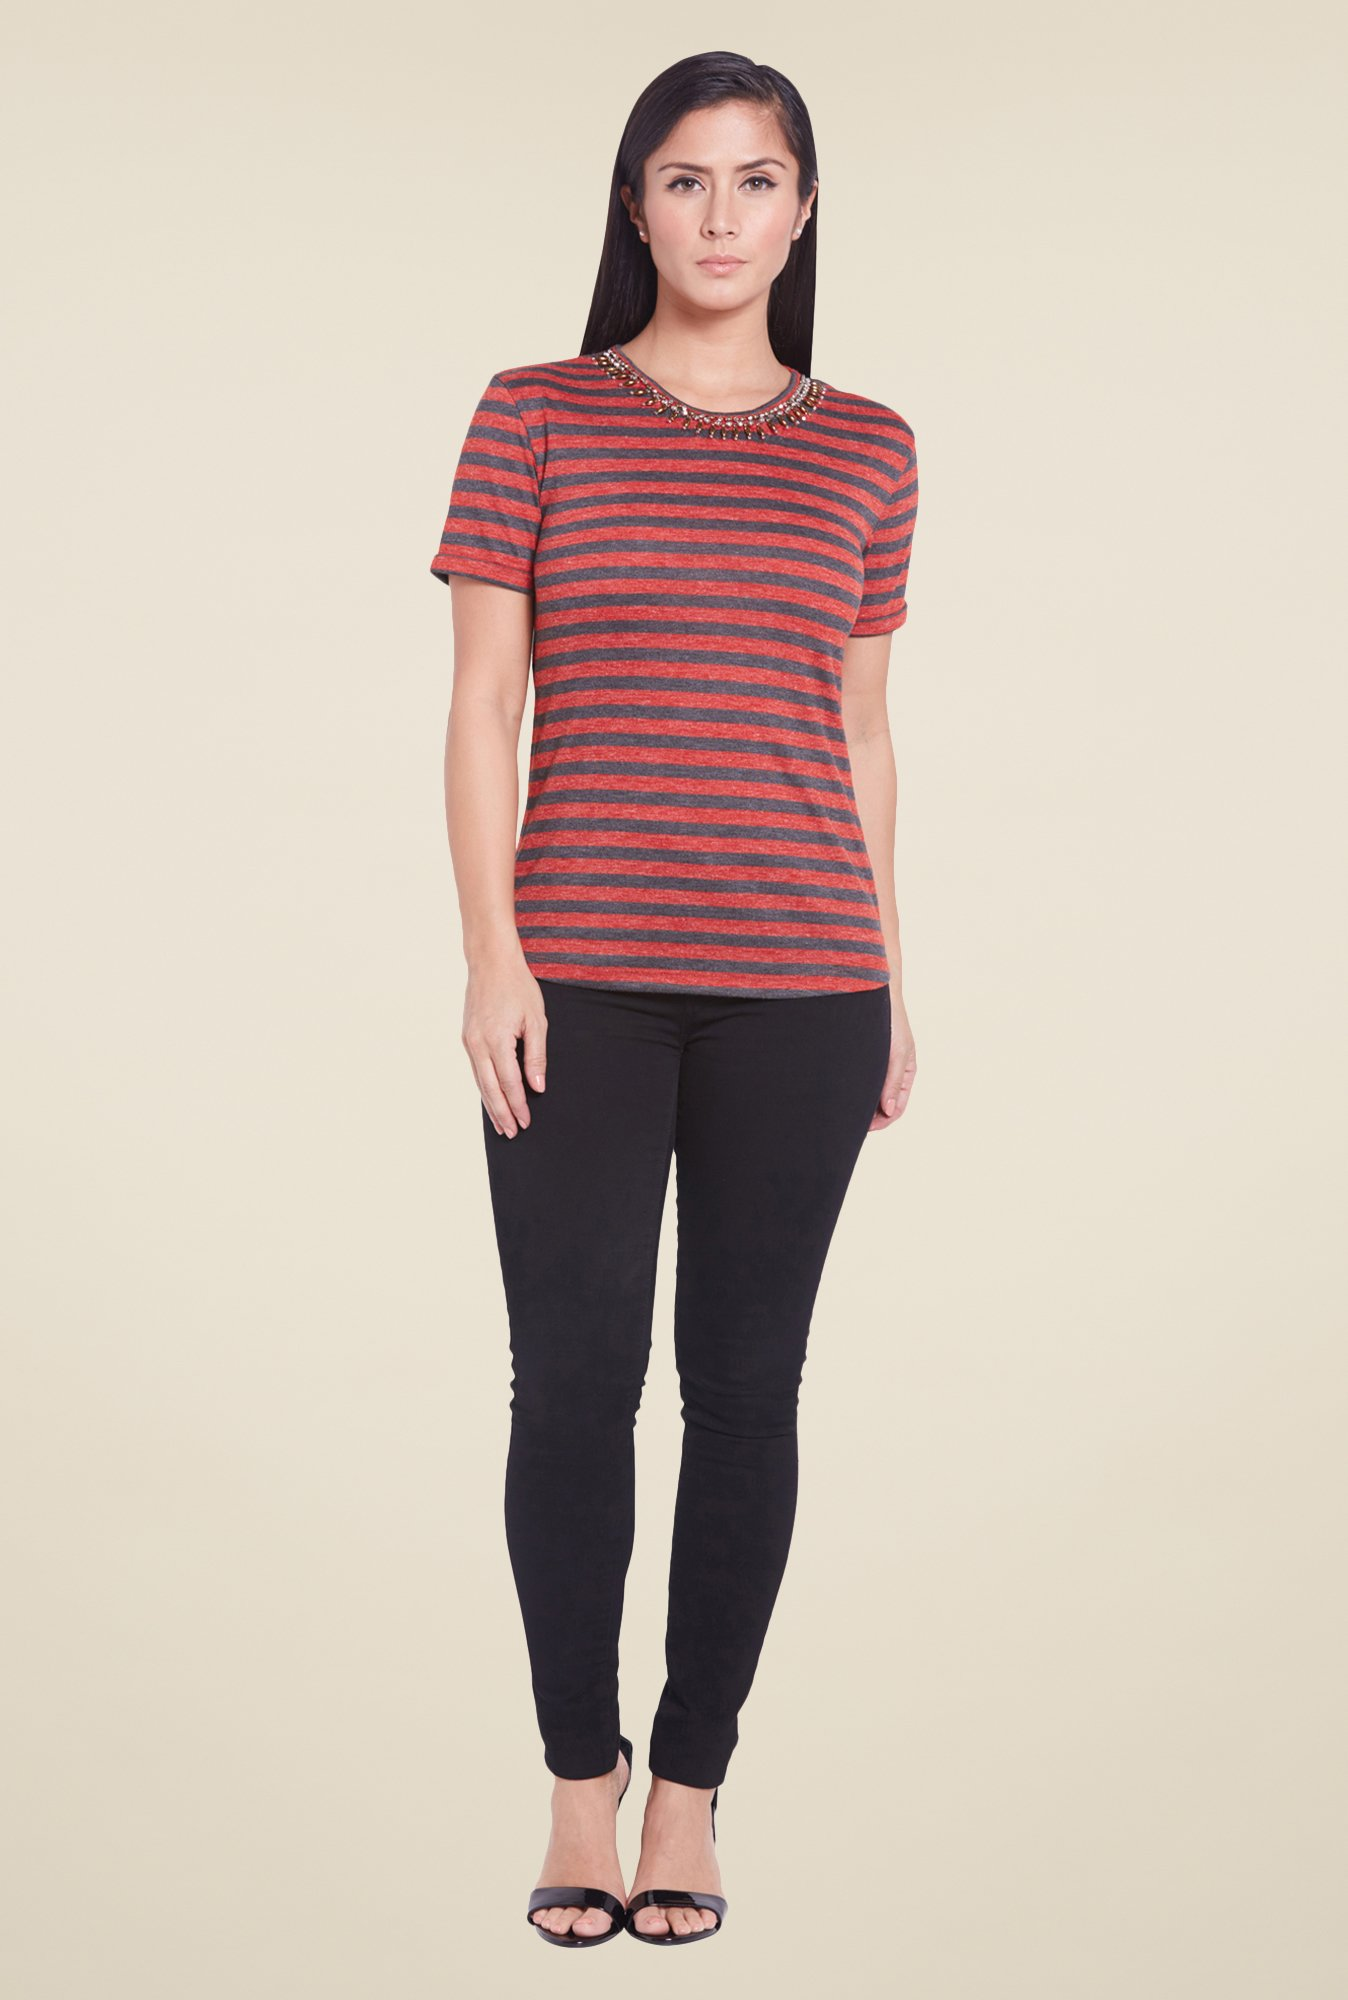 Globus Red Striped Top